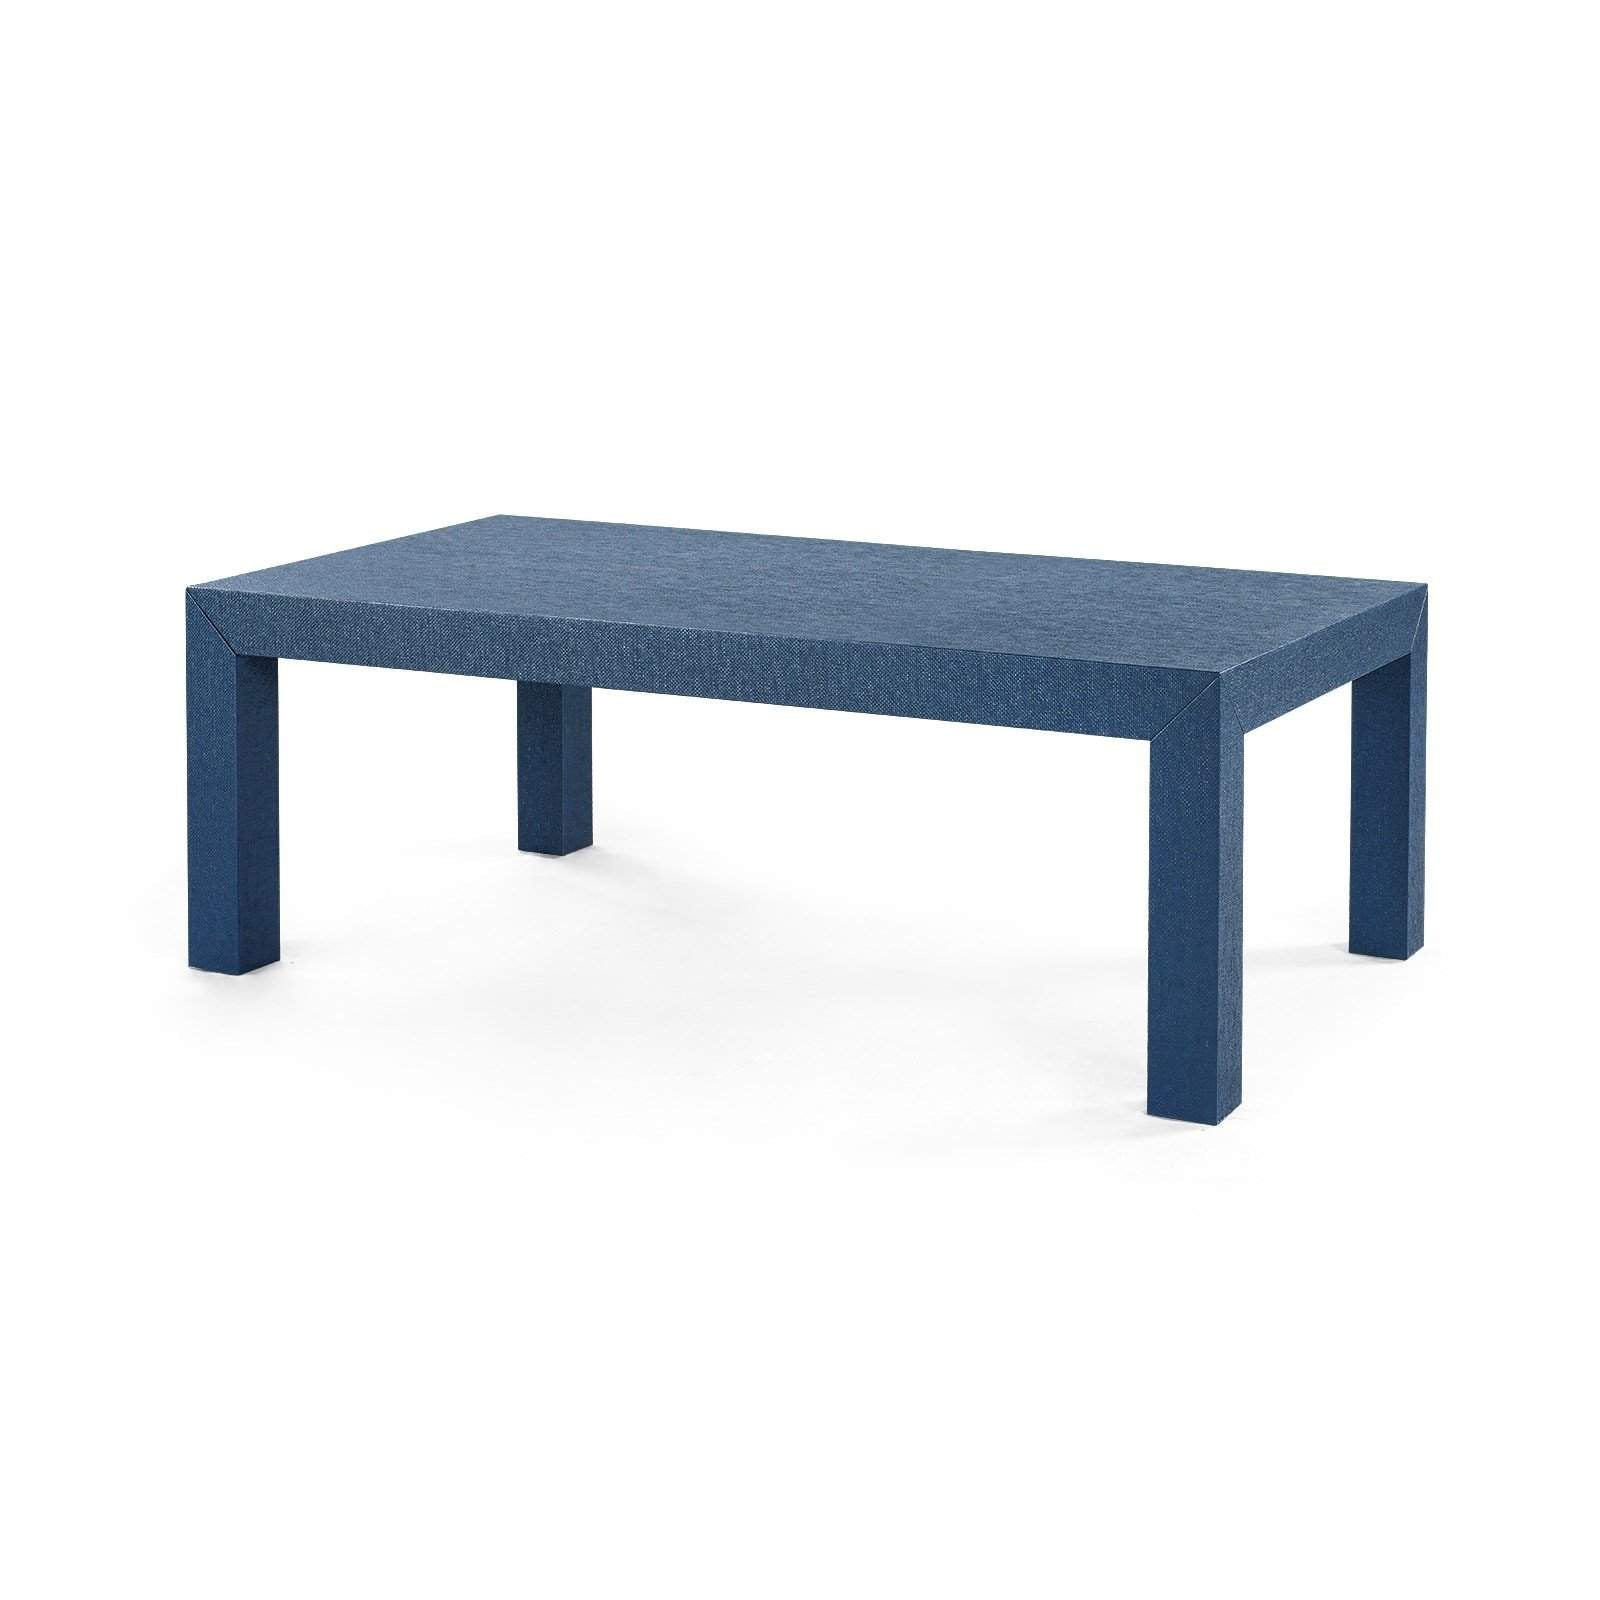 Bungalow 5 - PARSONS COFFEE TABLE. in NAVY BLUE